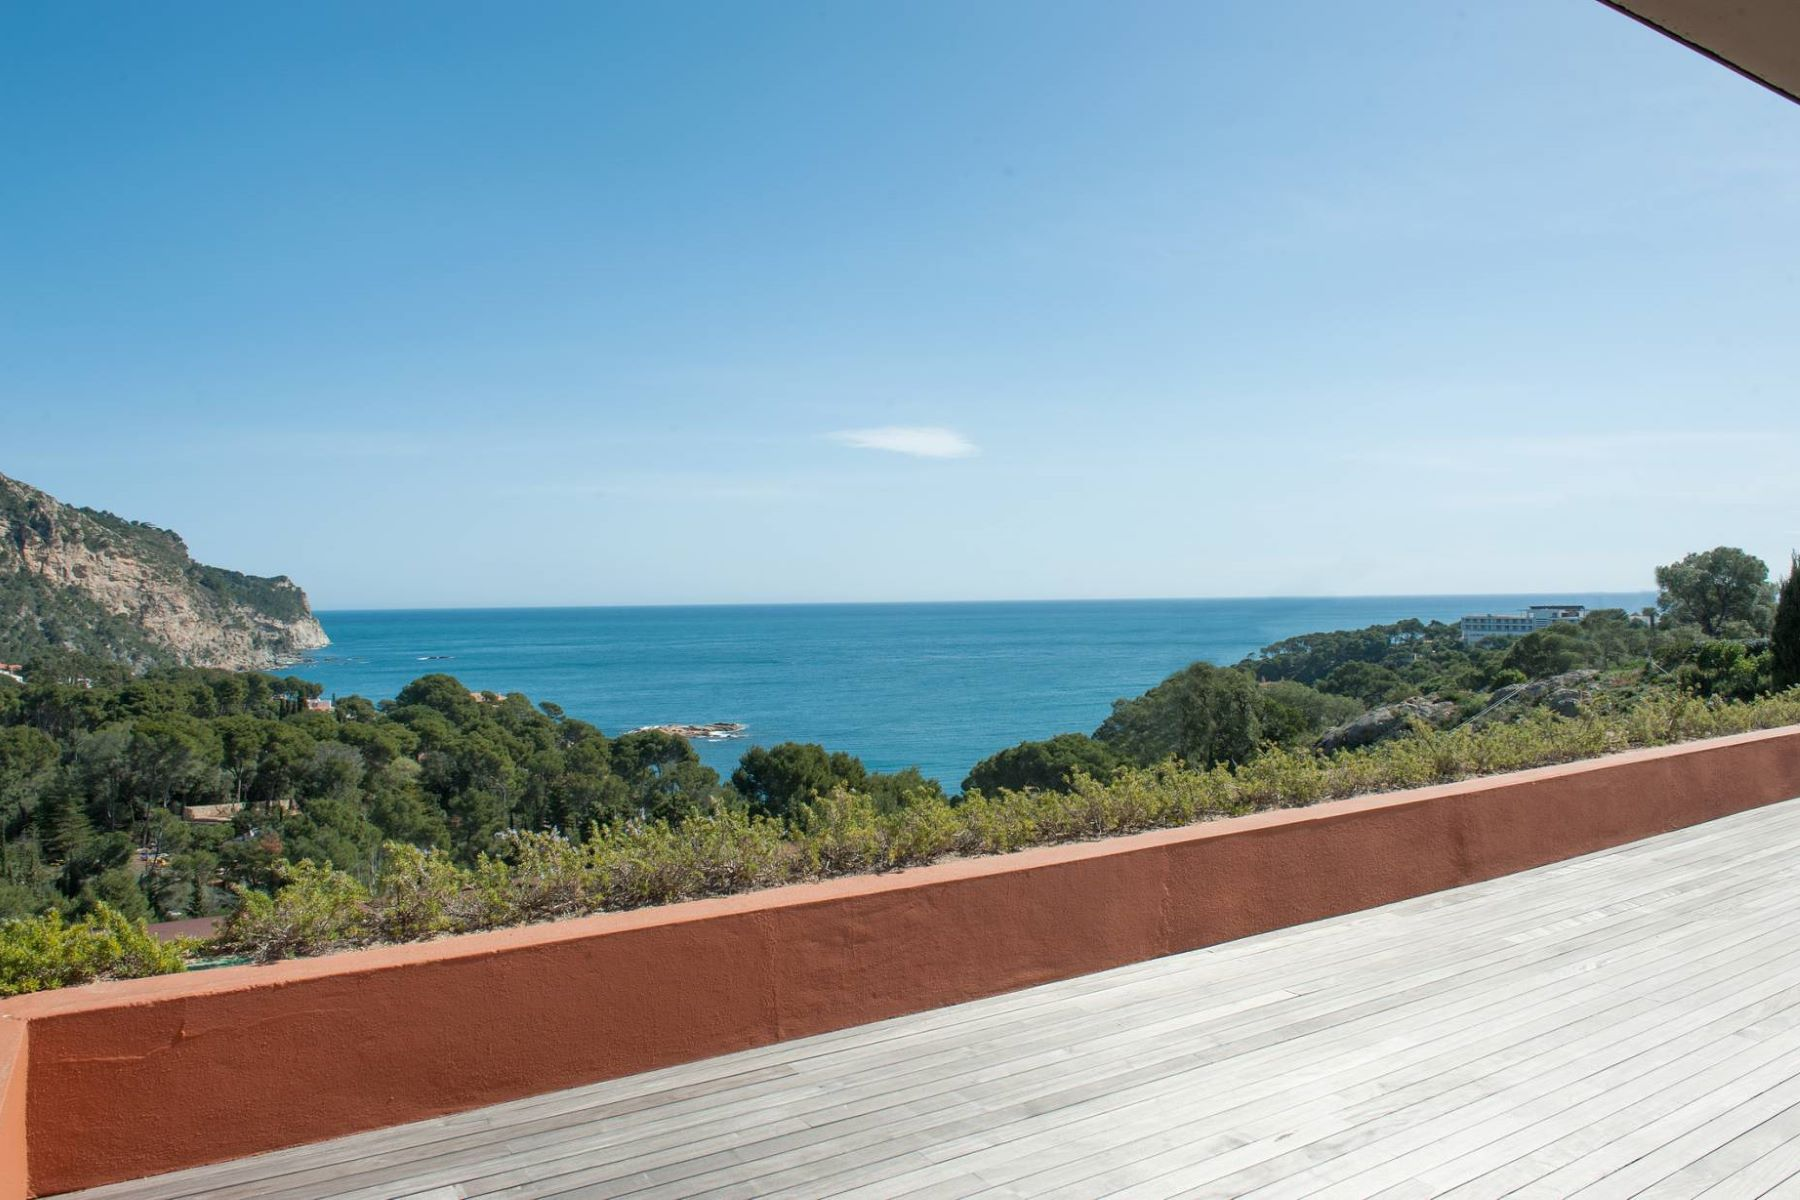 Apartment for Sale at Excepcional Apartments for sale close to Aiguablava with sea views Begur, Costa Brava, 17255 Spain